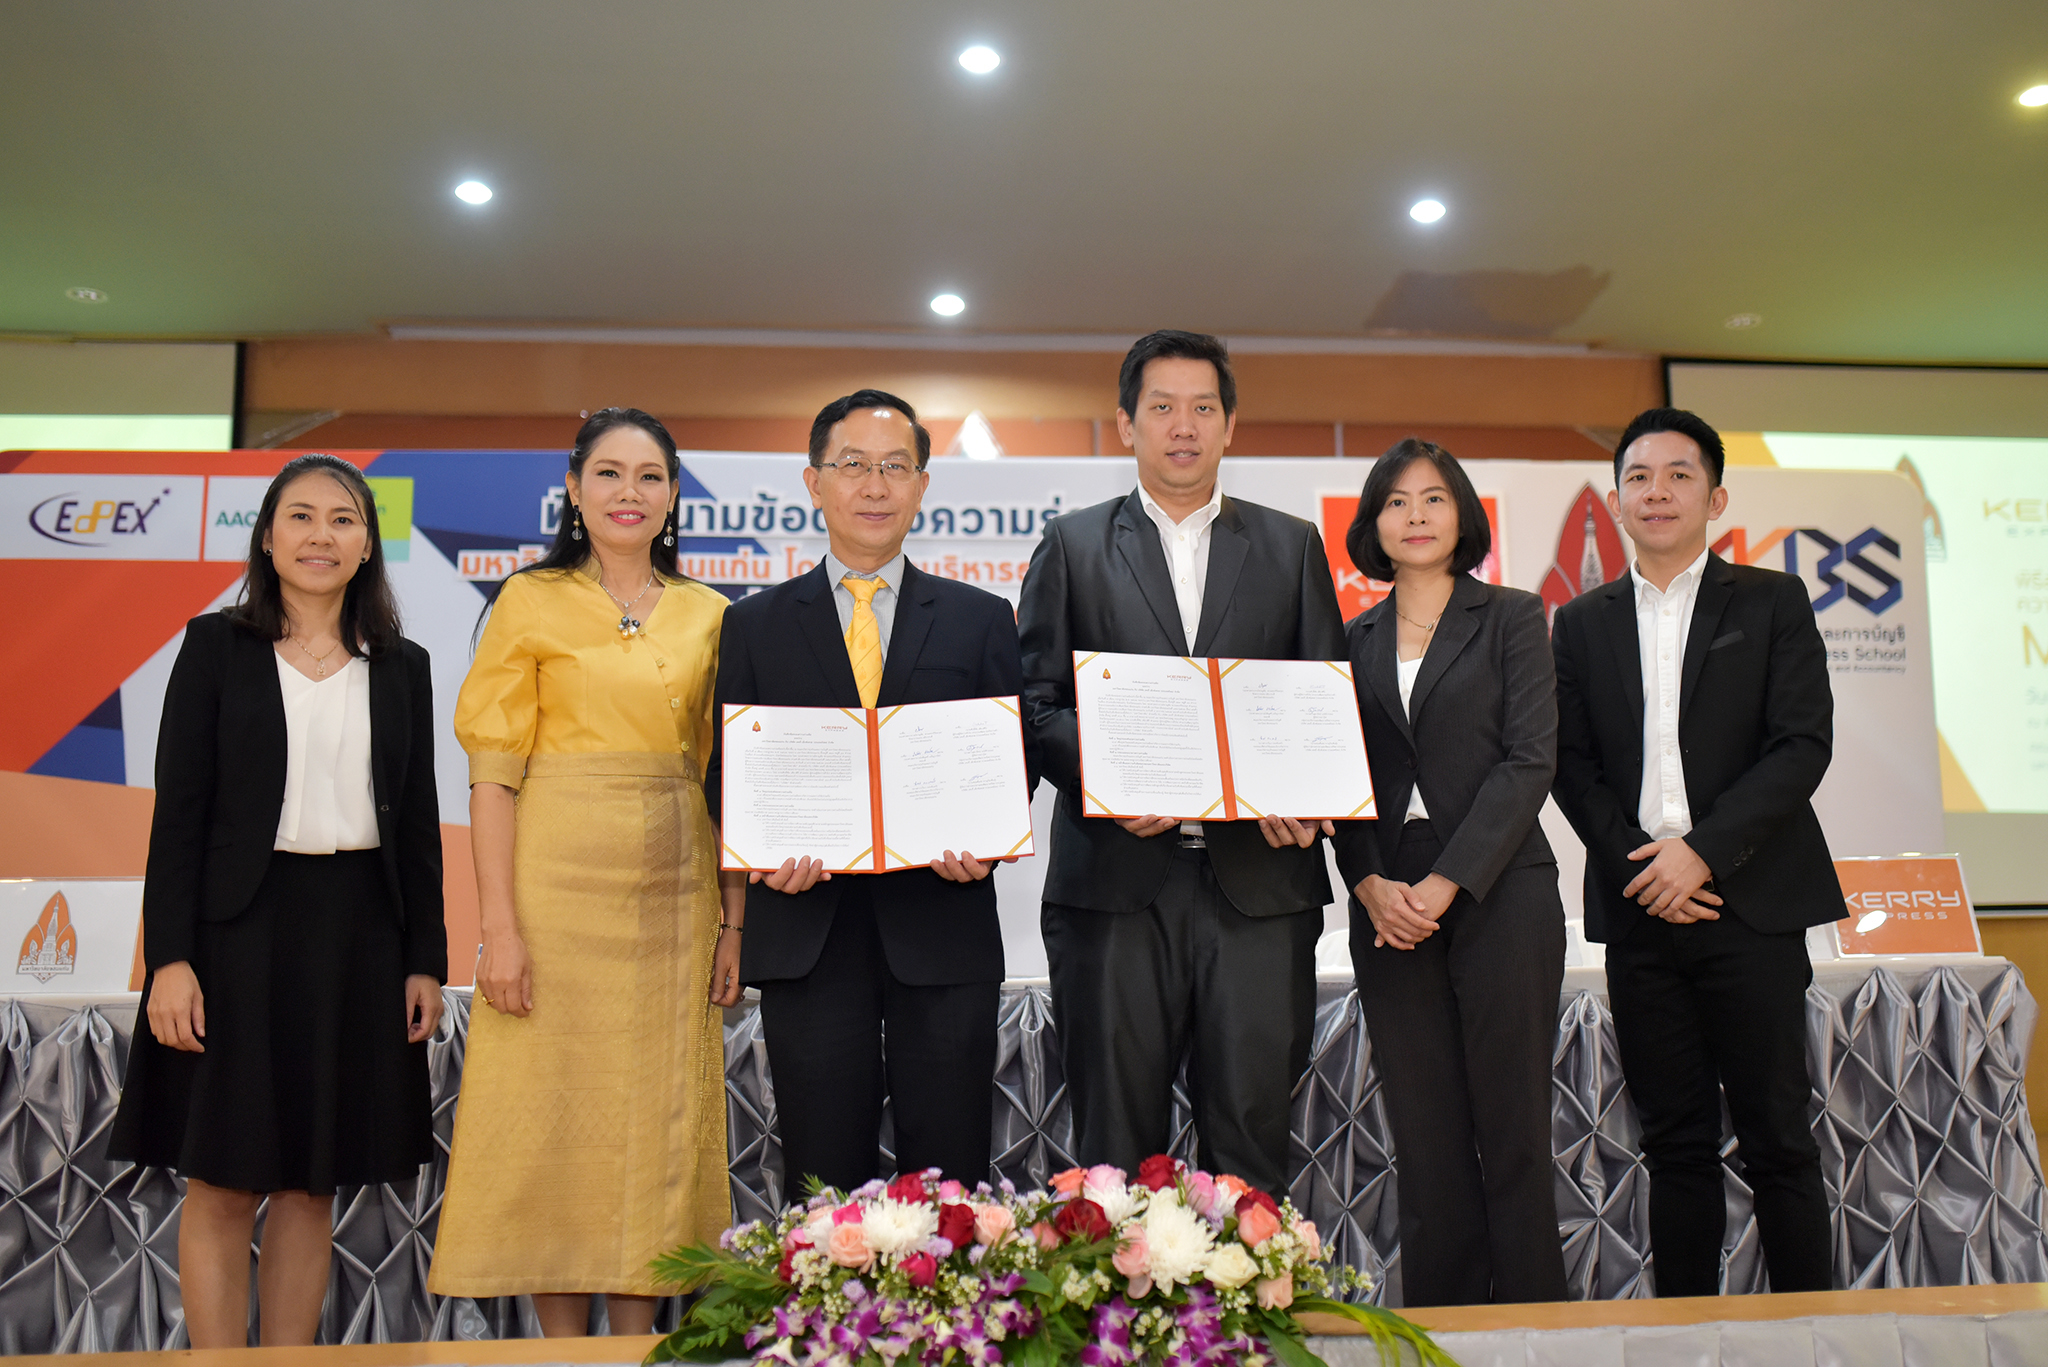 KKBS signs MOU with Kerry Express to improve students' academic potential for research